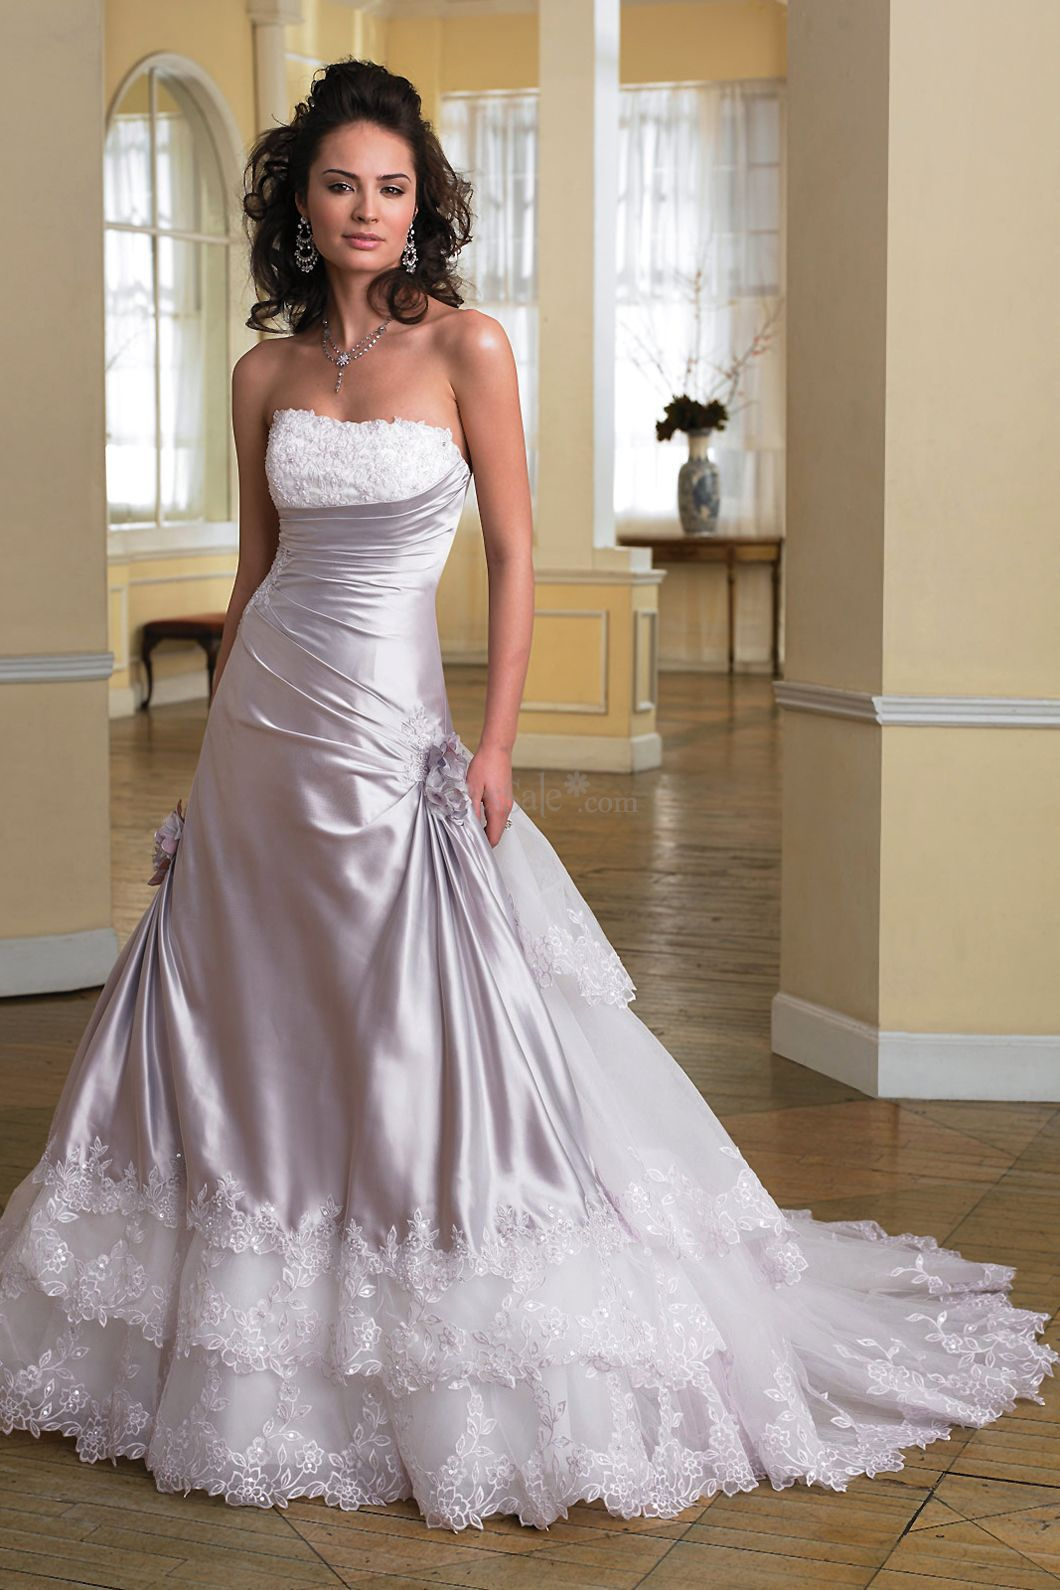 Previously owned wedding dresses  Pin by Bev Veach on Dresses  Pinterest